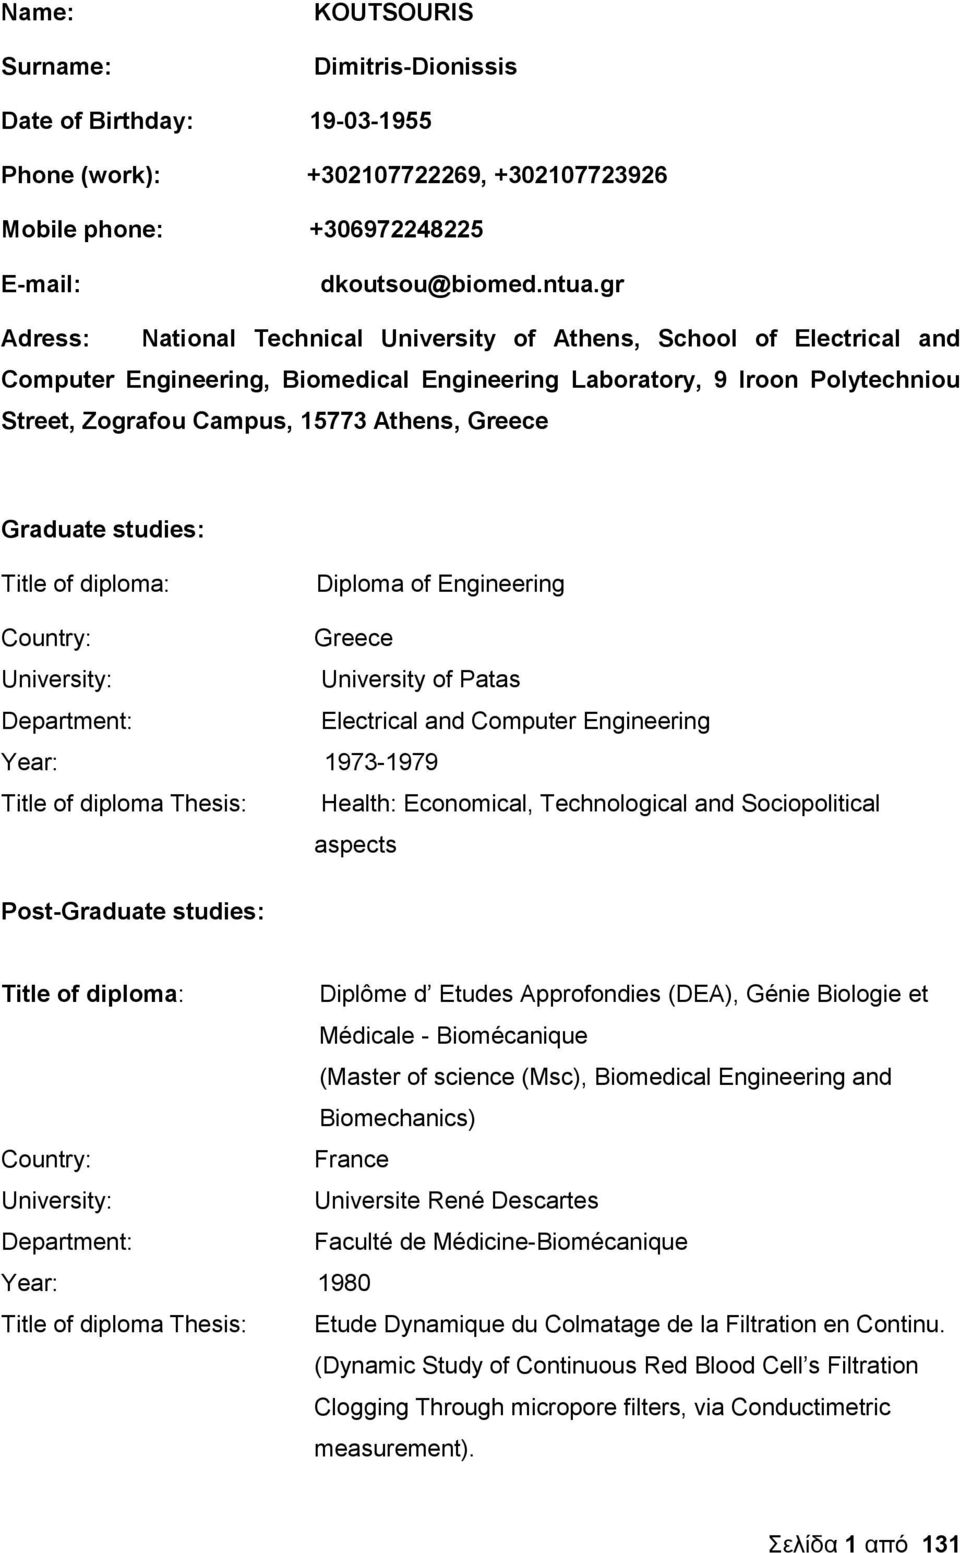 Greece Graduate studies: Title of diploma: Diploma of Engineering Country: Greece University: University of Patas Department: Electrical and Computer Engineering Year: 1973-1979 Title of diploma